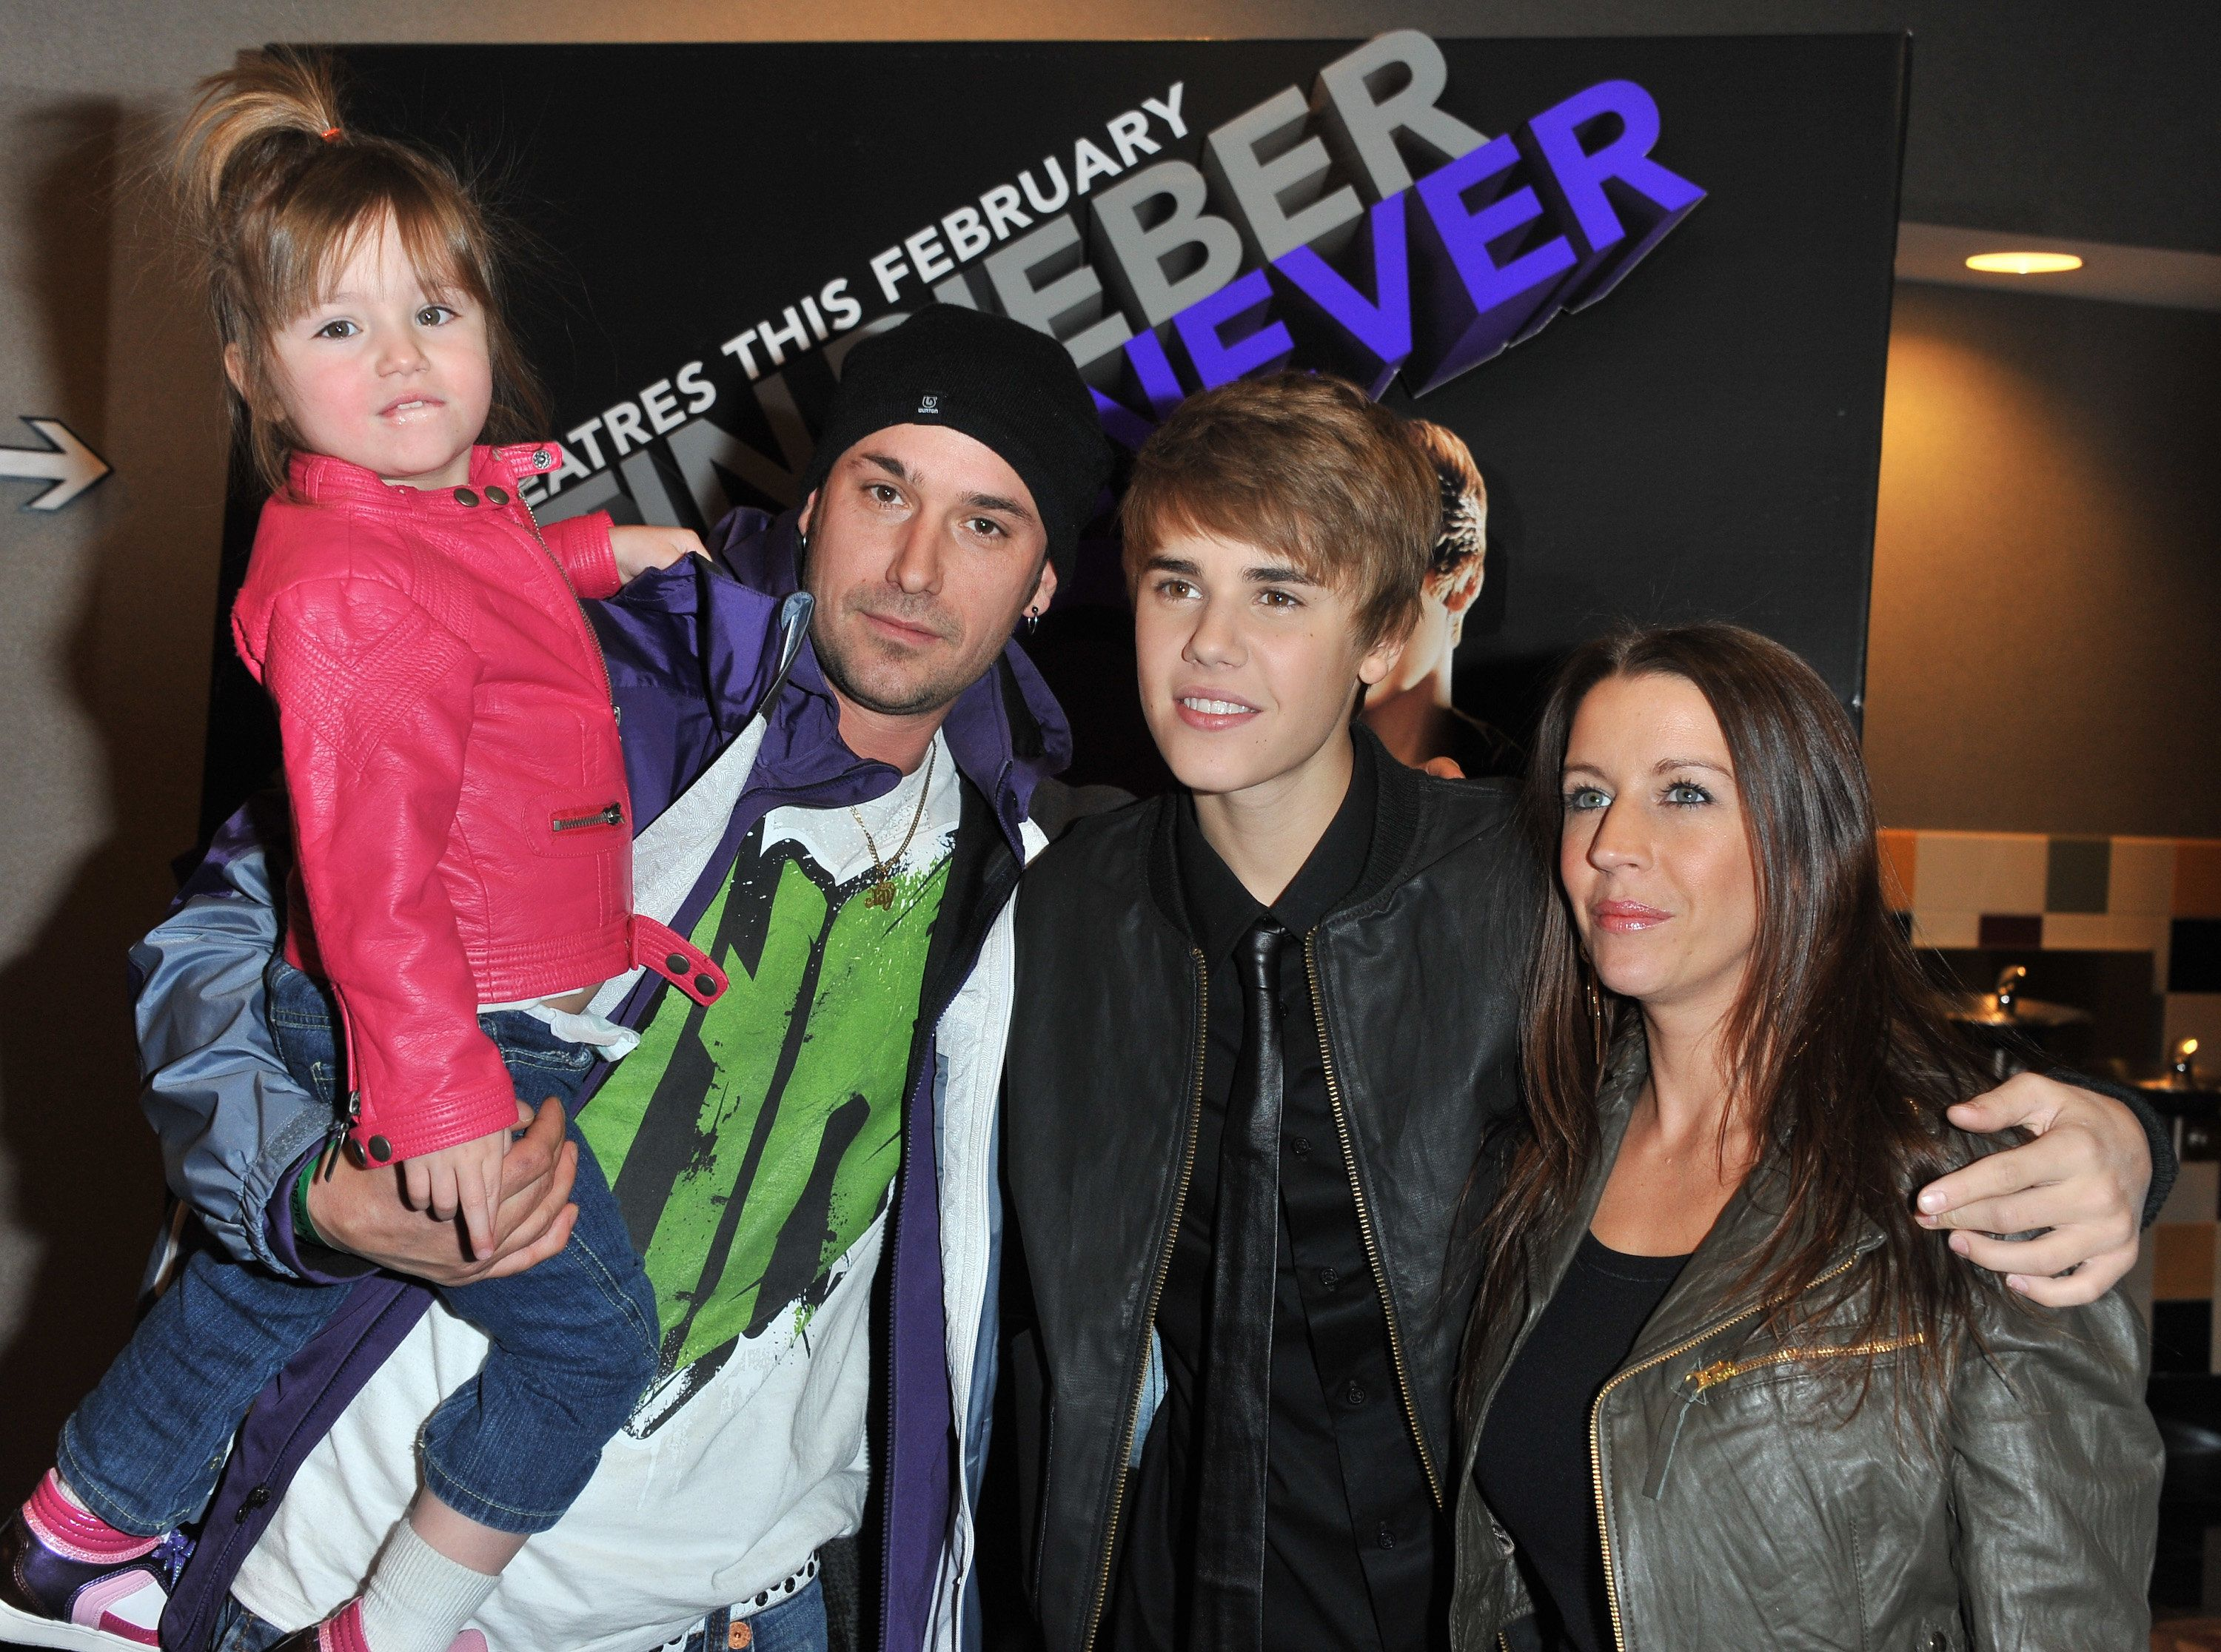 TORONTO, ON - FEBRUARY 01:  (L-R) Sister Jazmyn Bieber, father Jeremy Bieber, singer Justin Bieber and mother Pattie Lynn Mallete attend the premiere for 'Never Say Never' at the AMC Yonge & Dundas 24 theater on February 1, 2011 in Toronto, Canada.  (Photo by George Pimentel/WireImage)